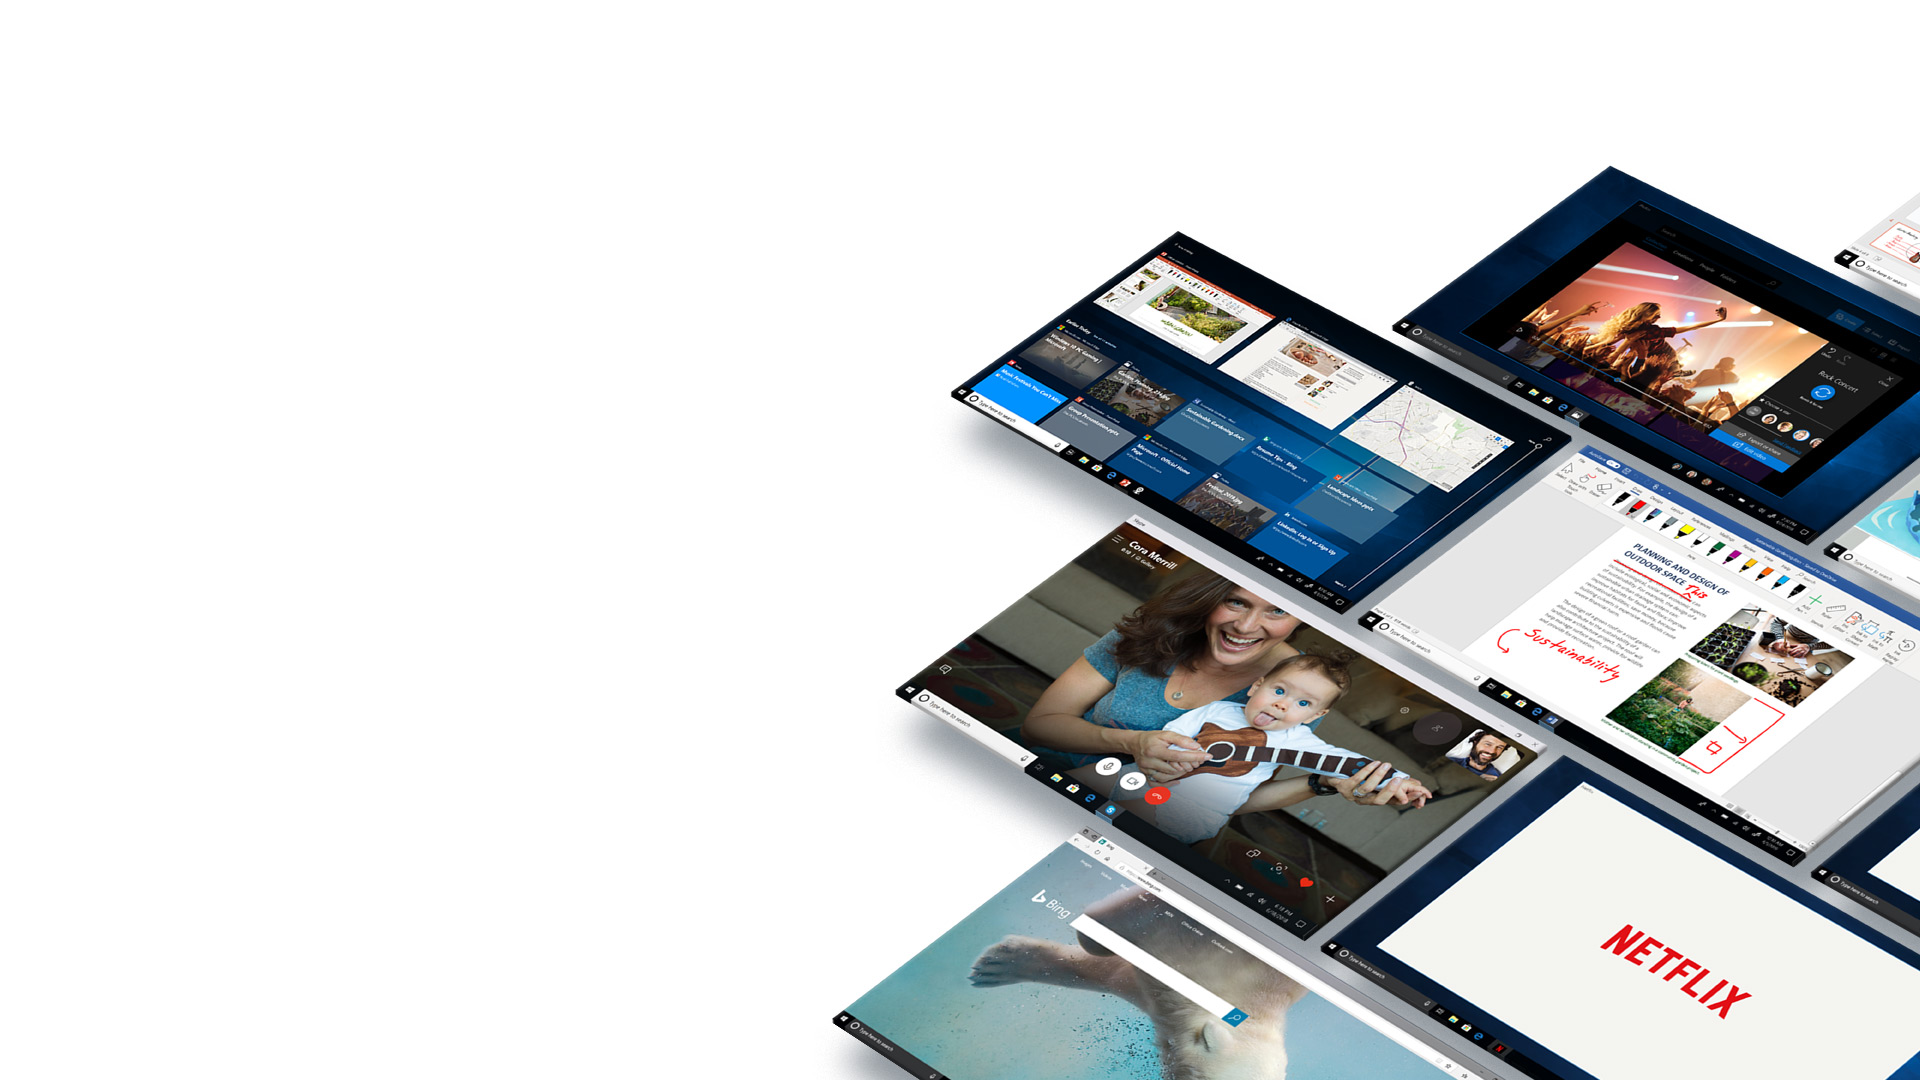 A mosaic of Windows 10 screens laying flat with a variety of apps and programs open